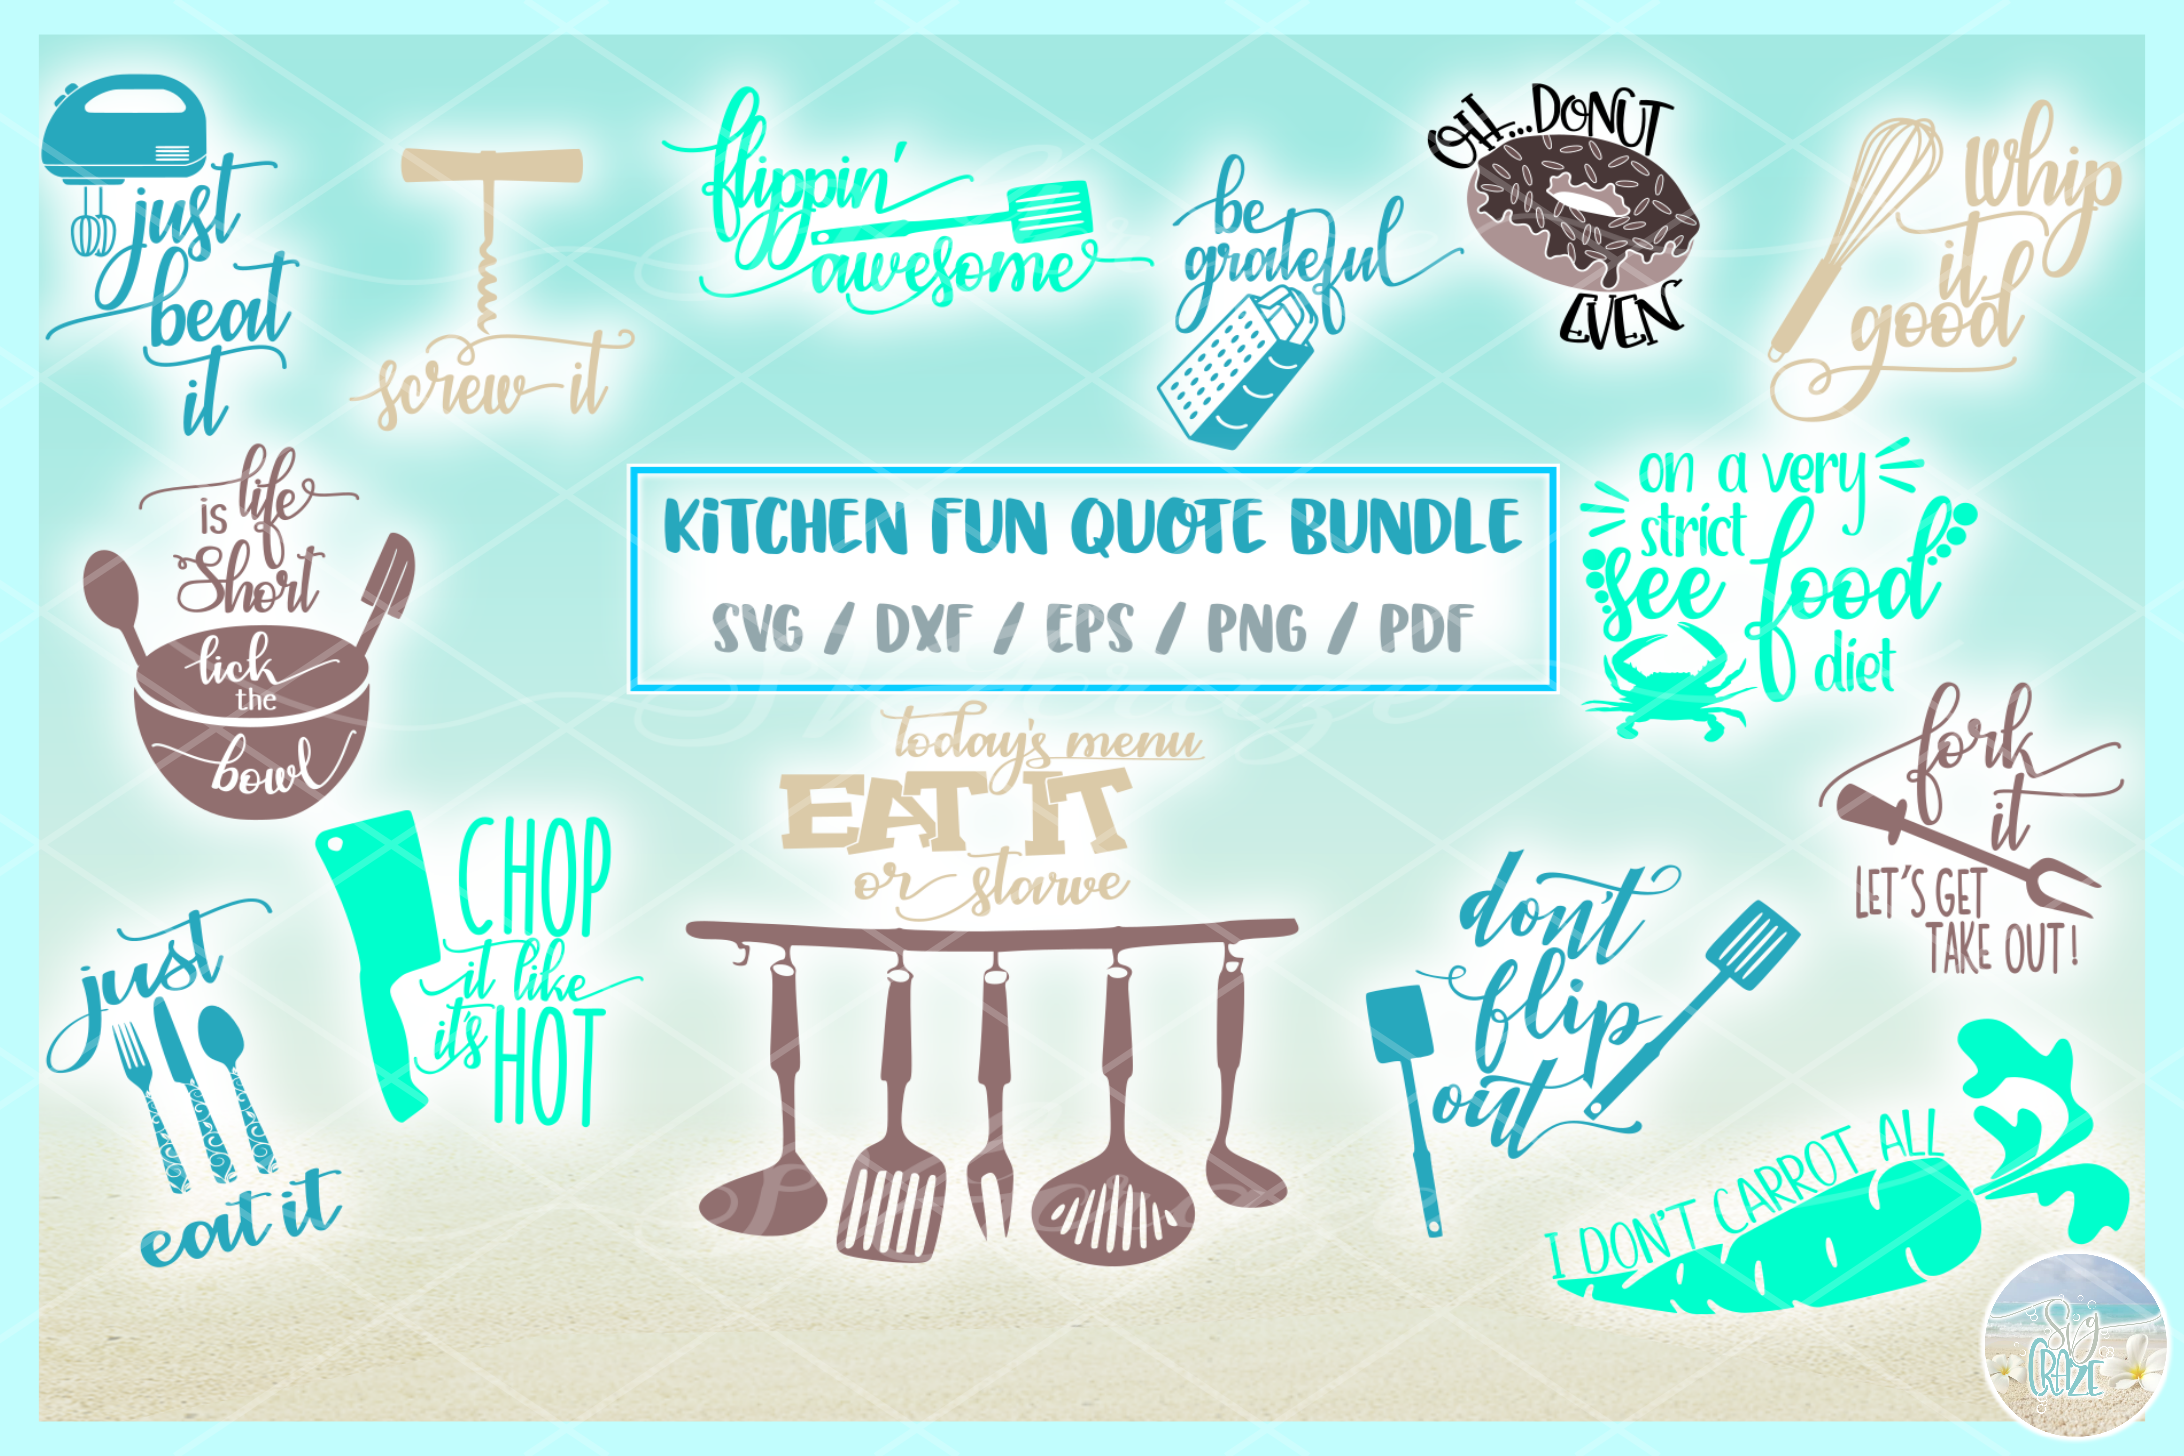 Fun Kitchen Quote Bundle SVG Dxf Eps Png PDF files example image 3